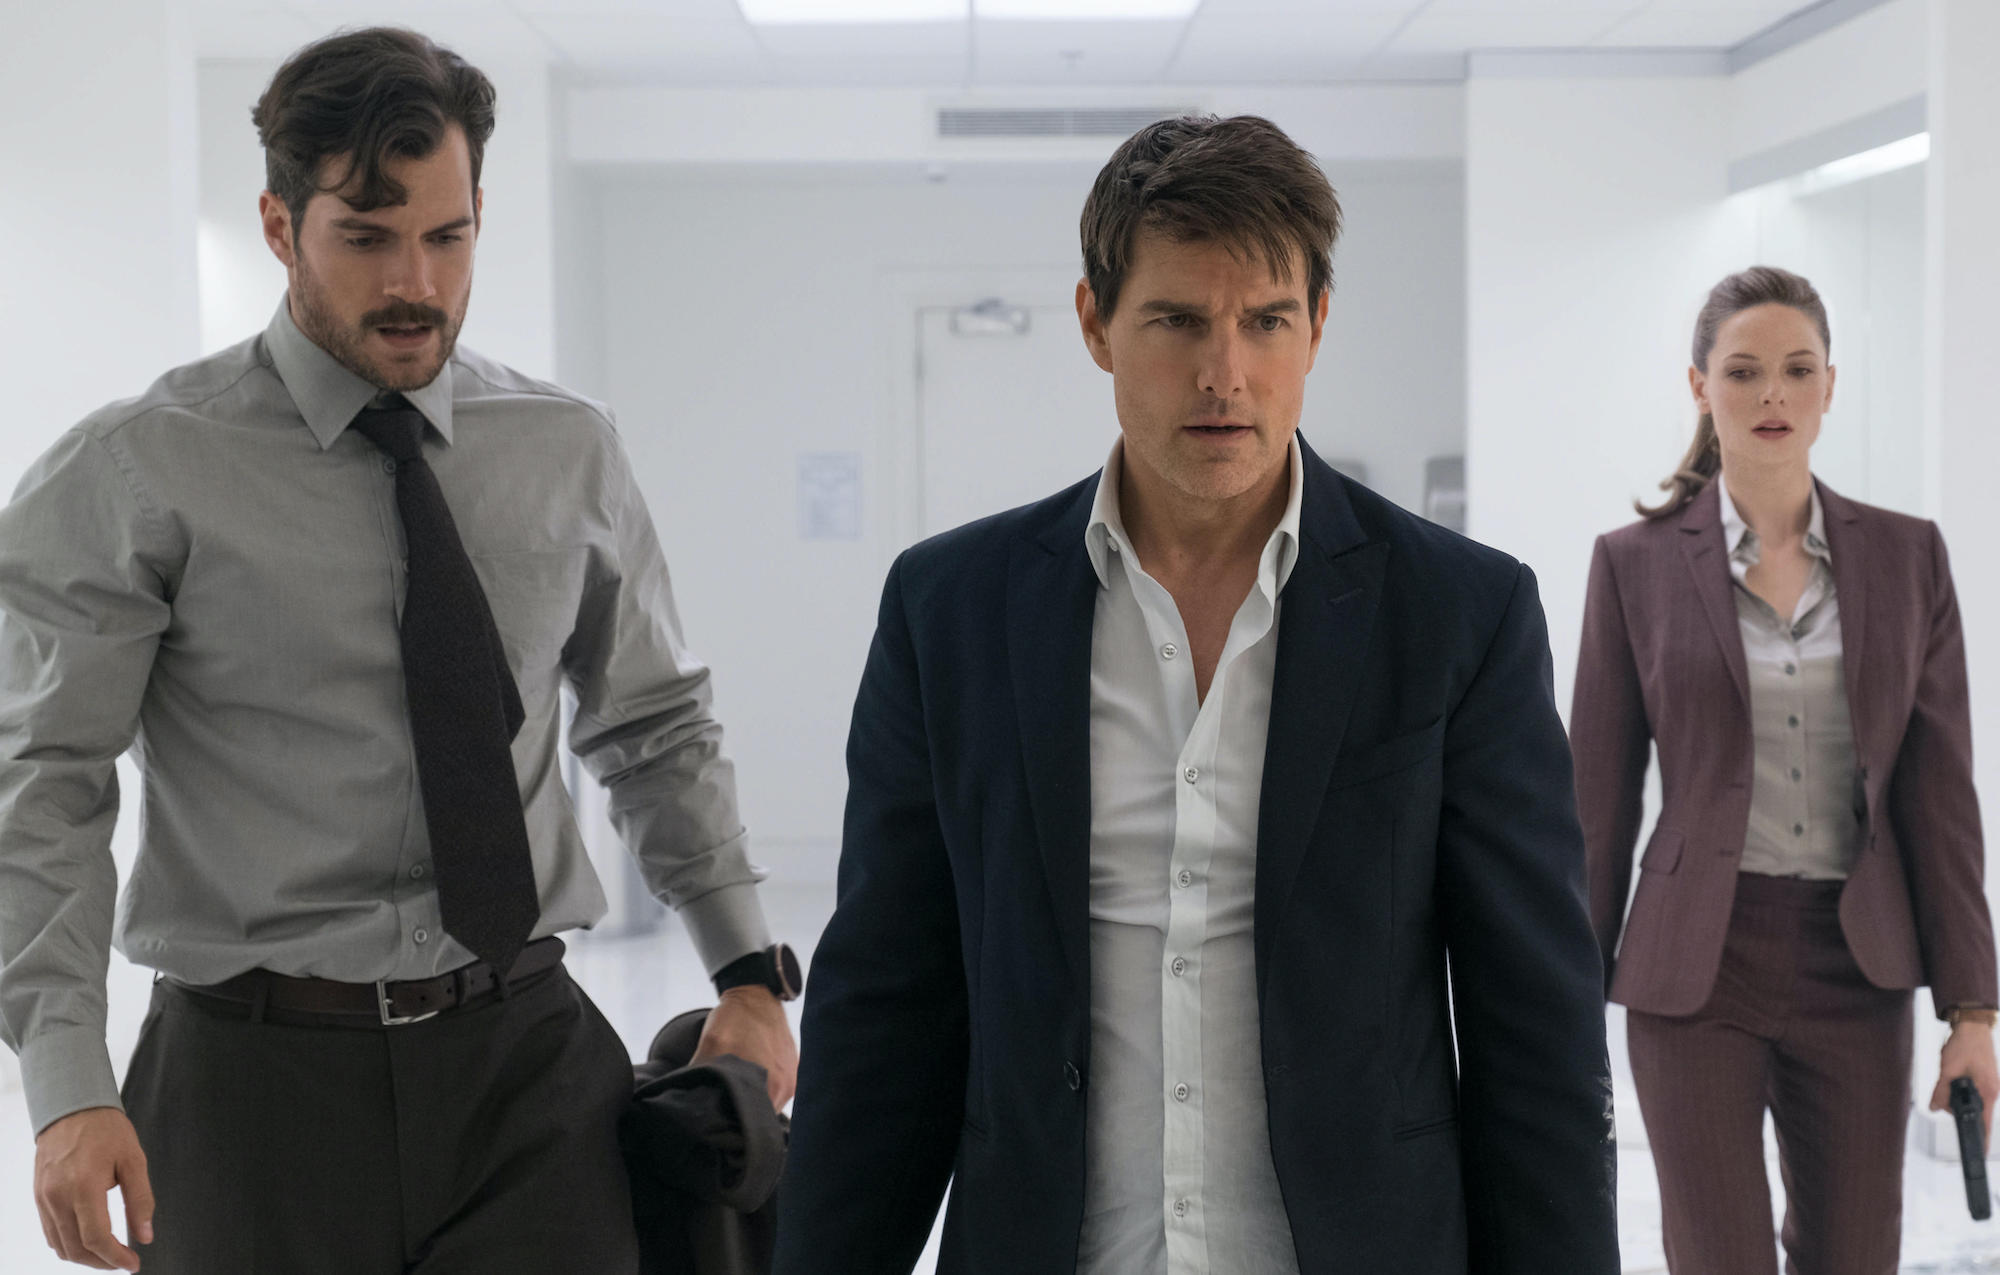 Mission: Impossible Fallout, Tom Cruise, Henry Cavill, Rebecca Ferguson